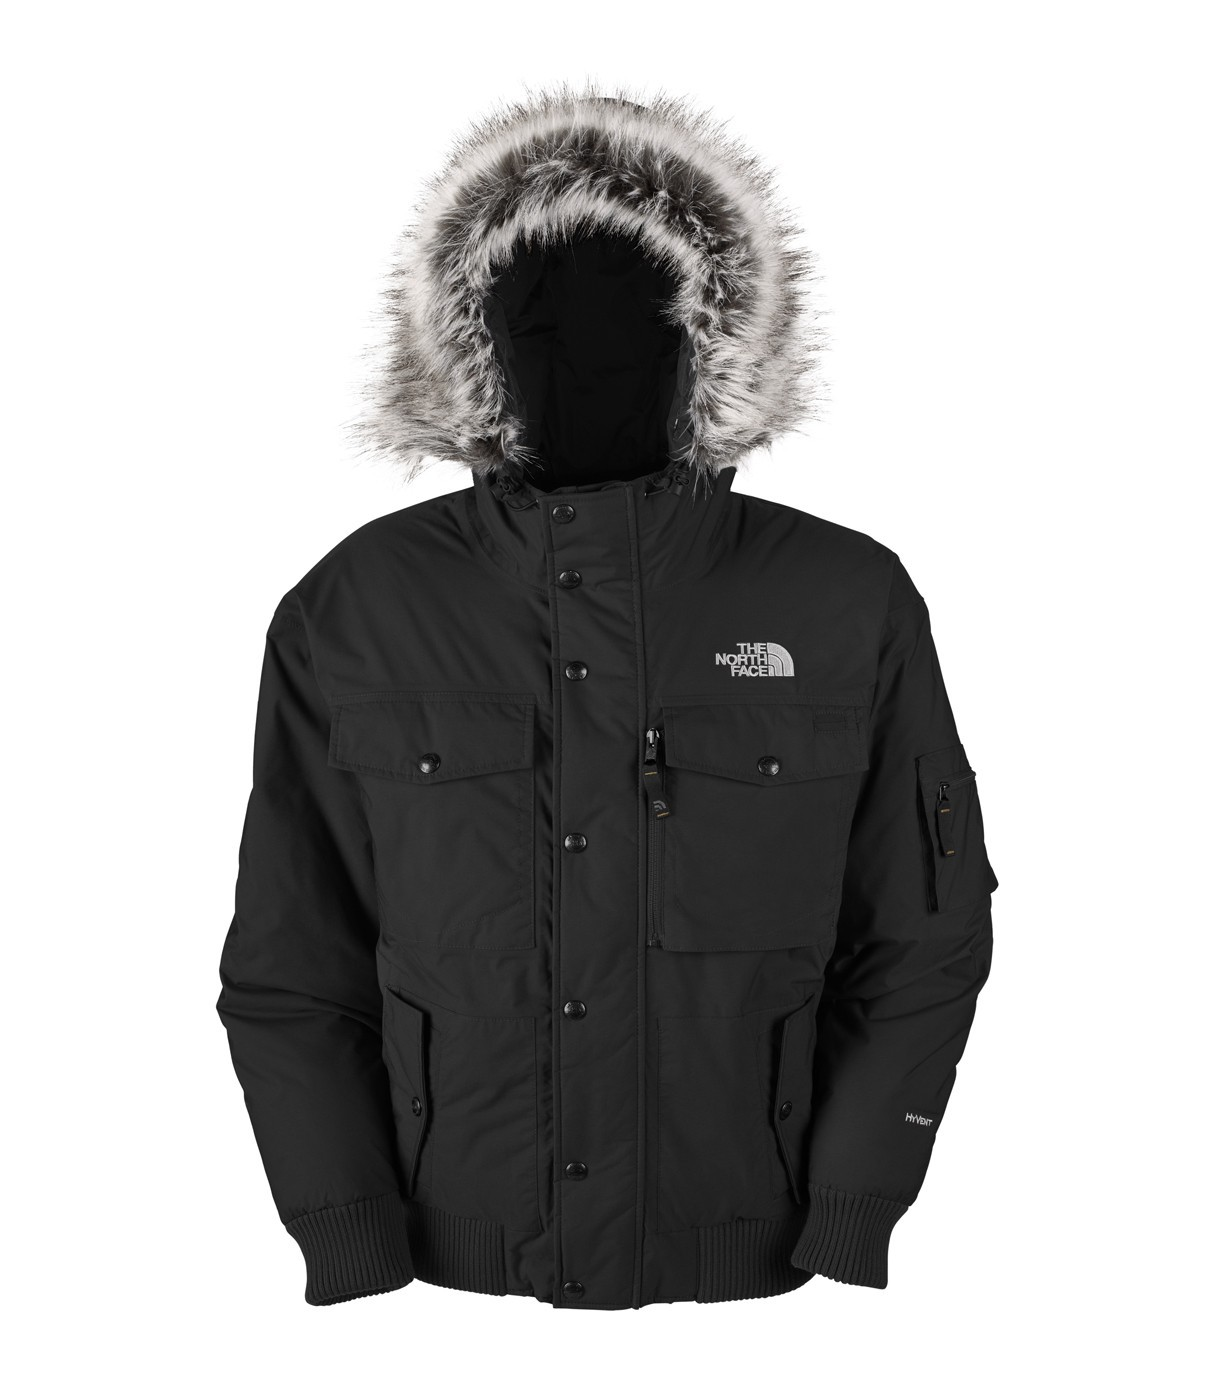 cad18b4484 Down Jacket The North Face Gotham Bittersweet Brown AAQF74A Men